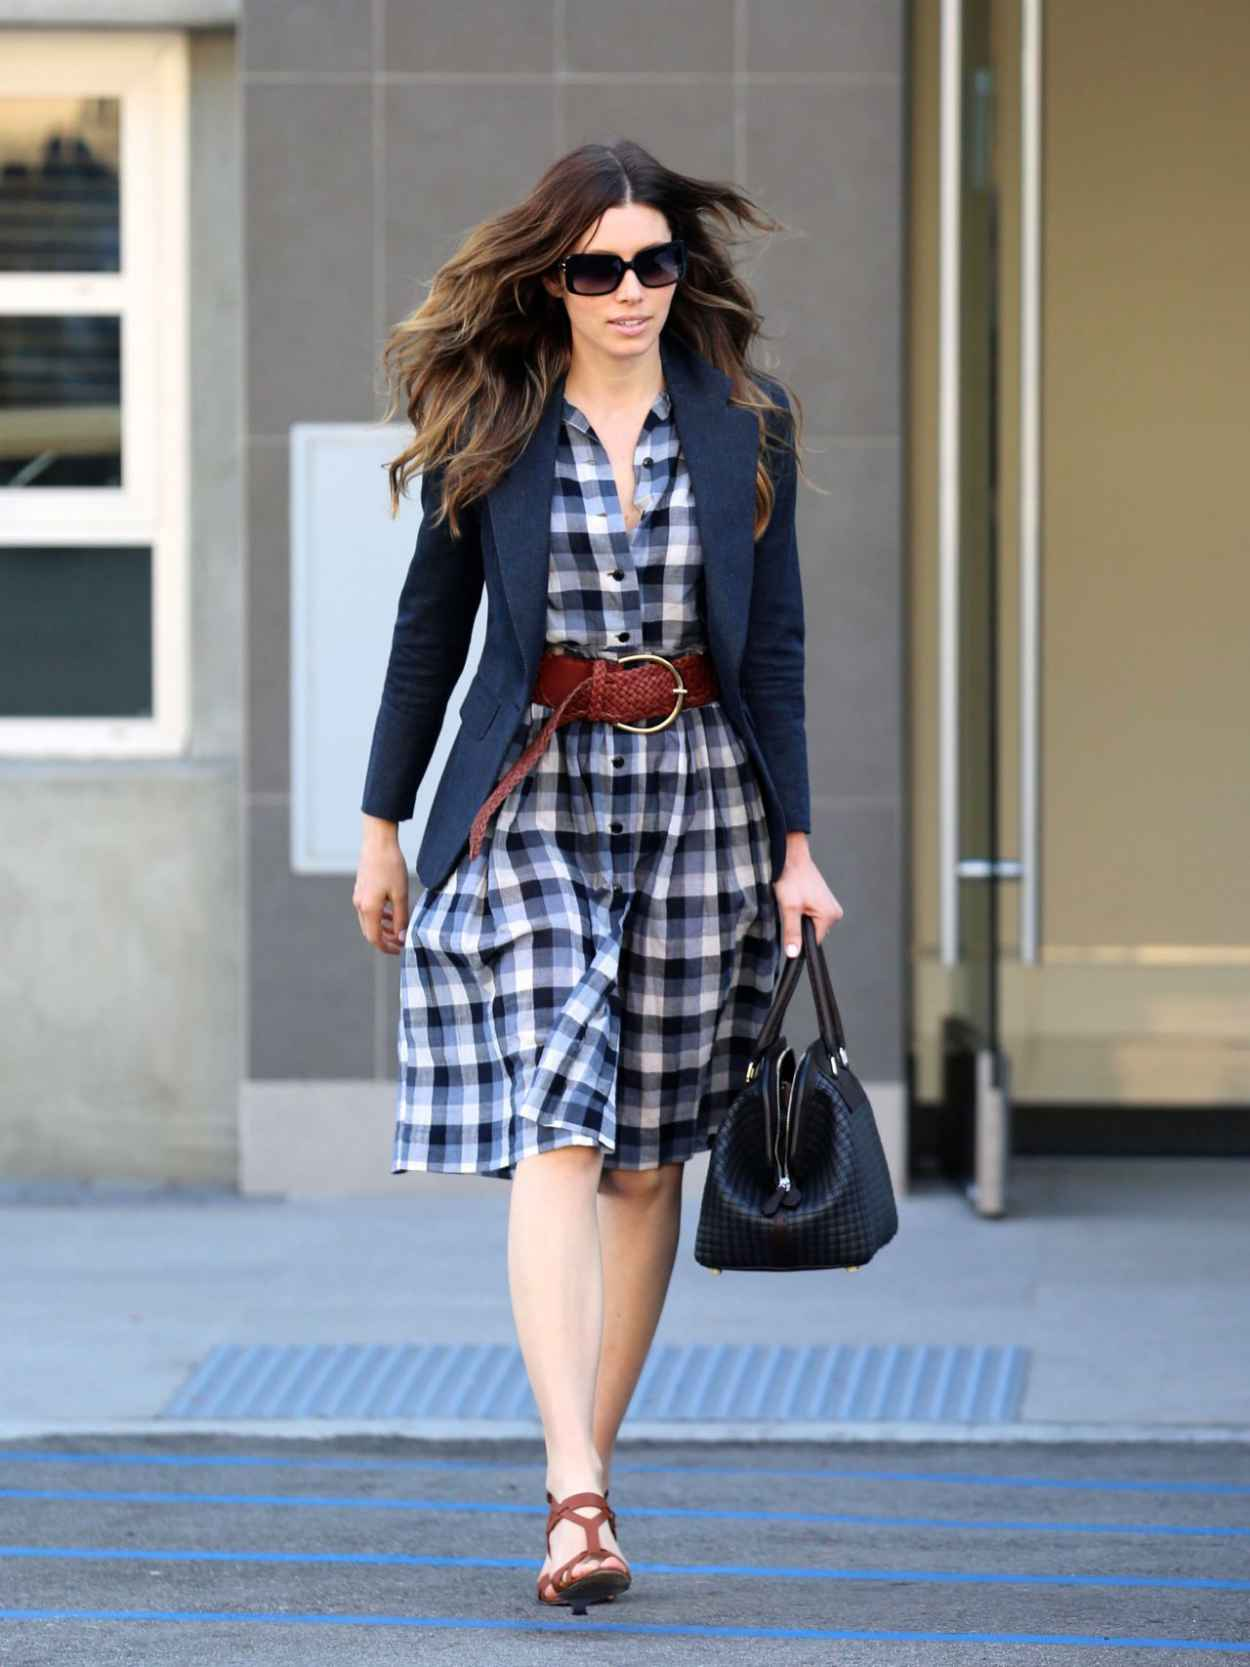 Jessica Biel in Belted Plaid Dress - Out and About in Santa Monica-1